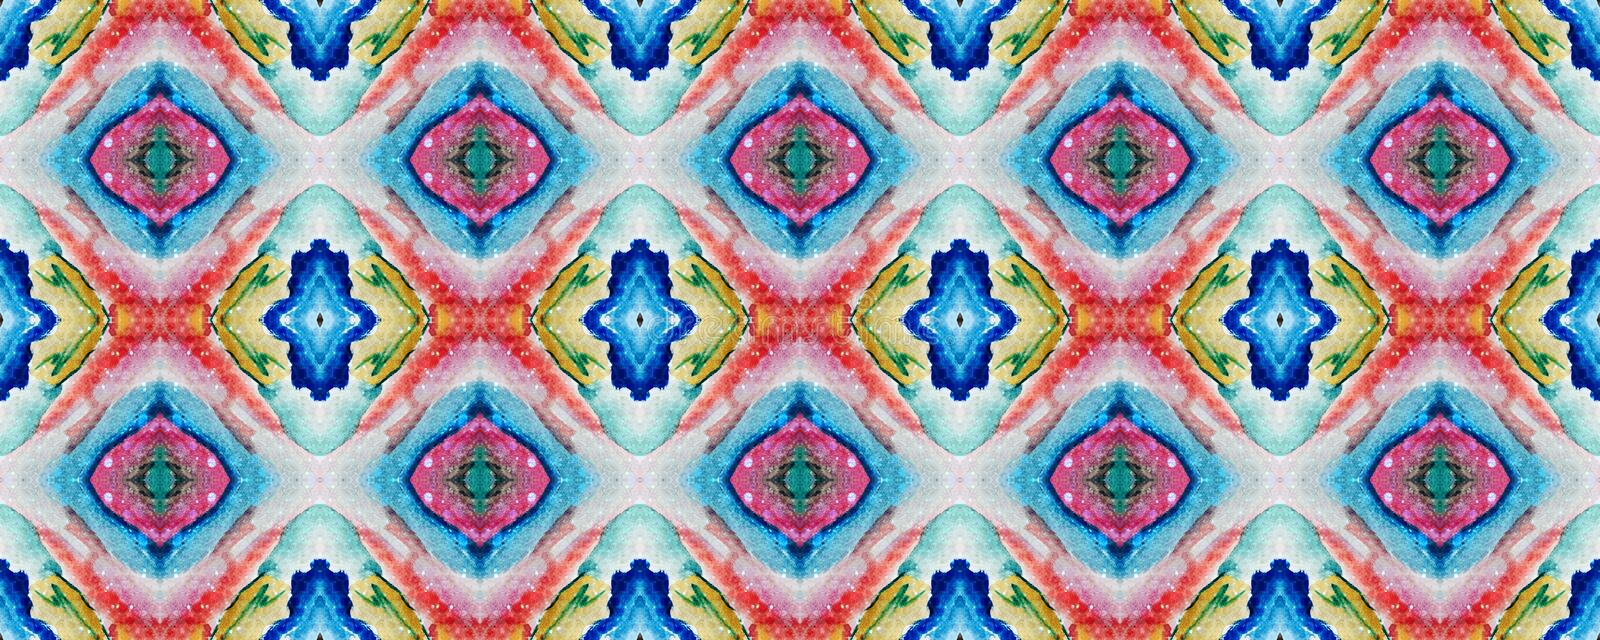 Ikat Seamless Pattern. Watercolor Hand Drawn Textile. Creative Navajo Ikat Background. Psychedelic Rainbow Aztec Geometric Textile Border Ogee Seamless Texture royalty free illustration